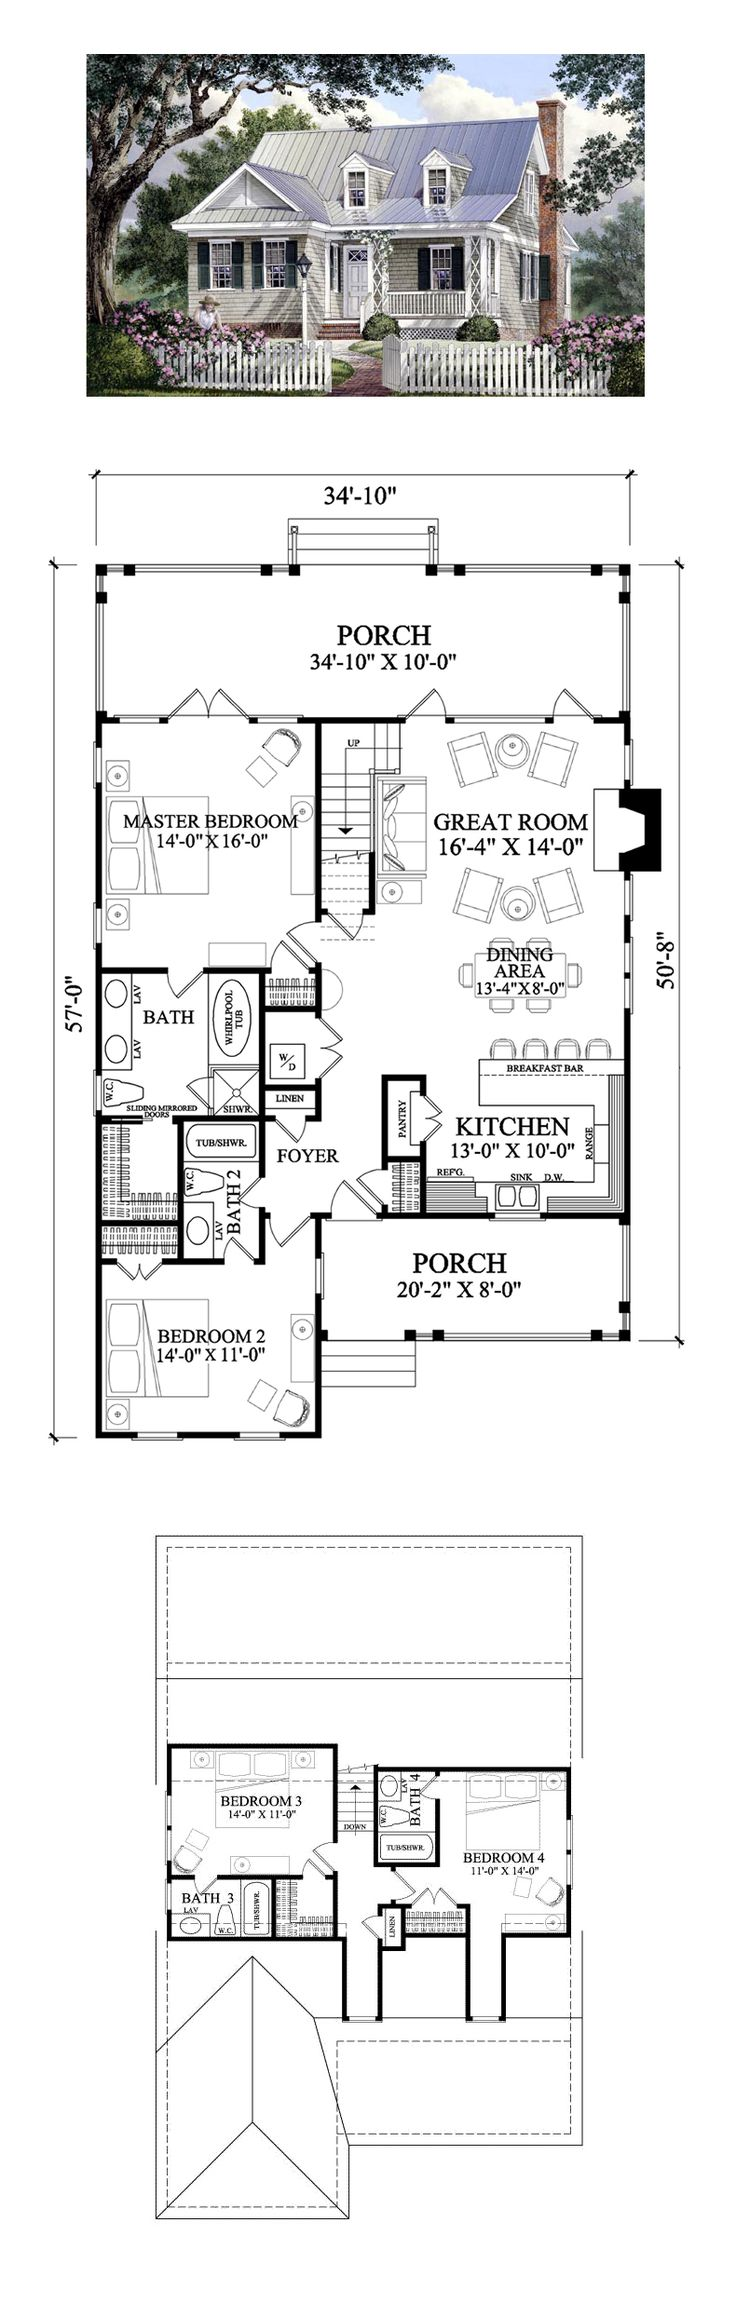 Cape cod cottage country southern house plan 86106 for Country cottage floor plans